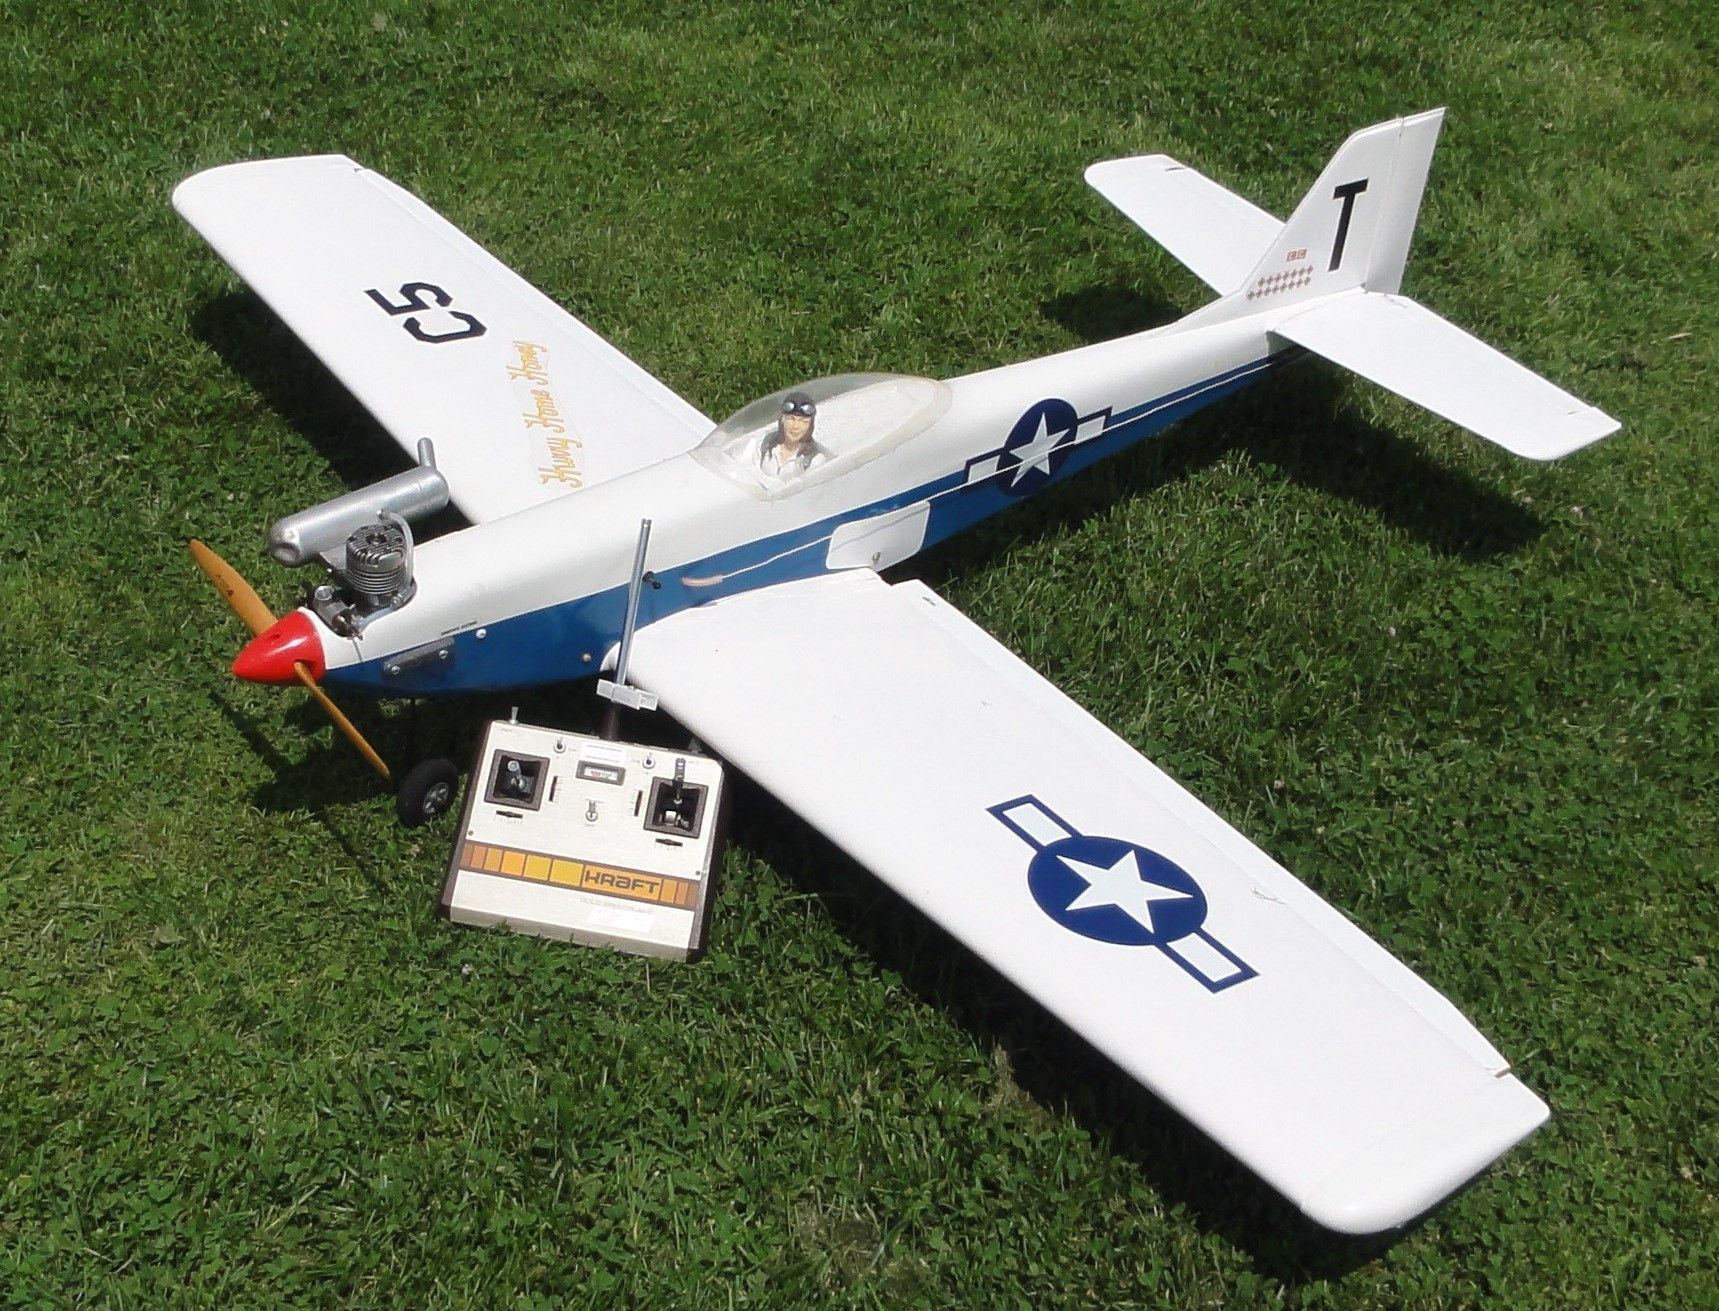 Top 6 Biggest RC Airplanes In The World #aircraft #